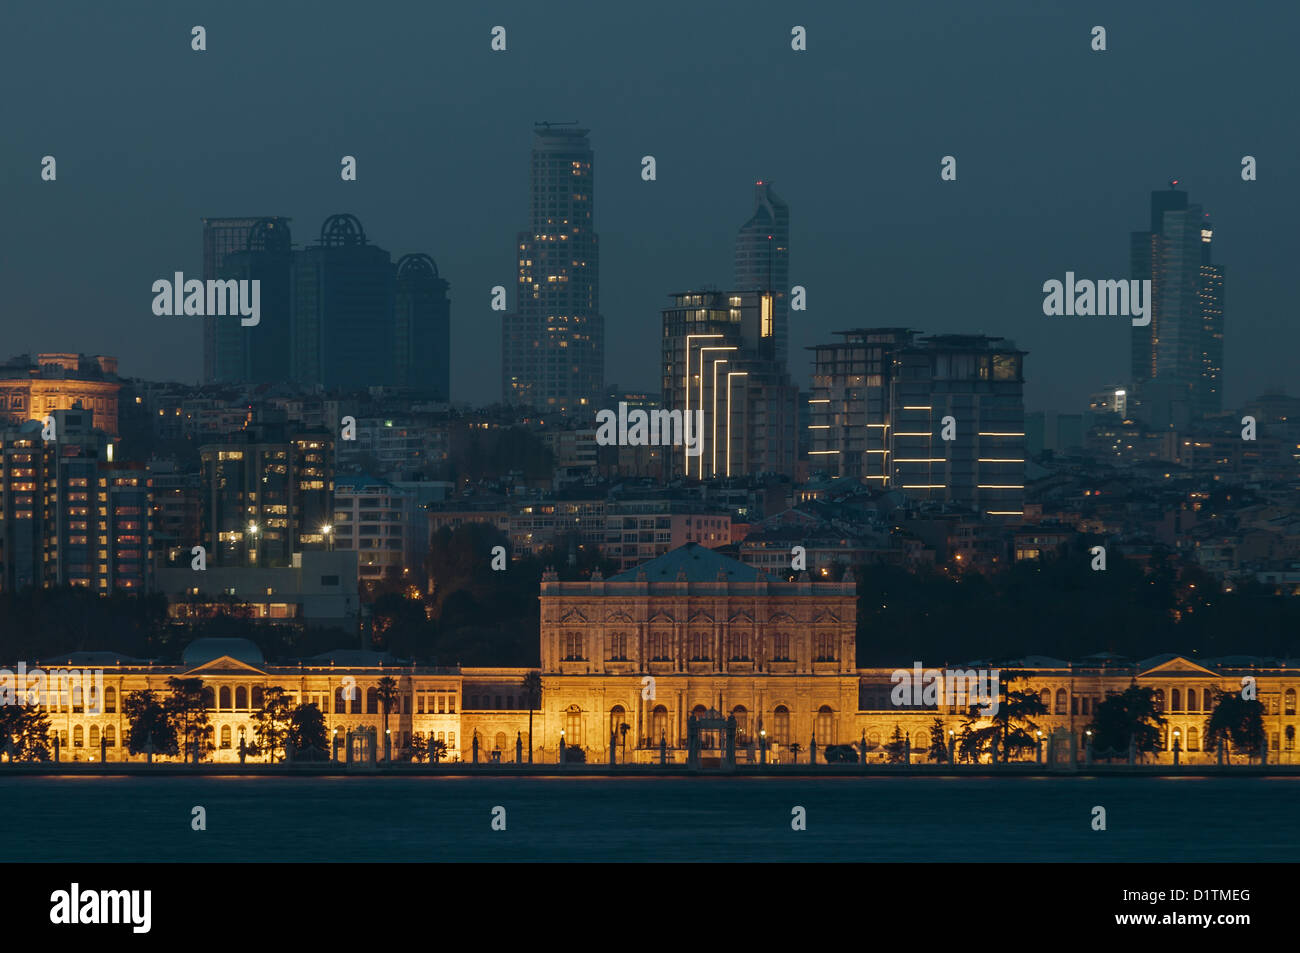 Dolmabahce Palace and Skylines in the backround,istanbul,Turkey - Stock Image